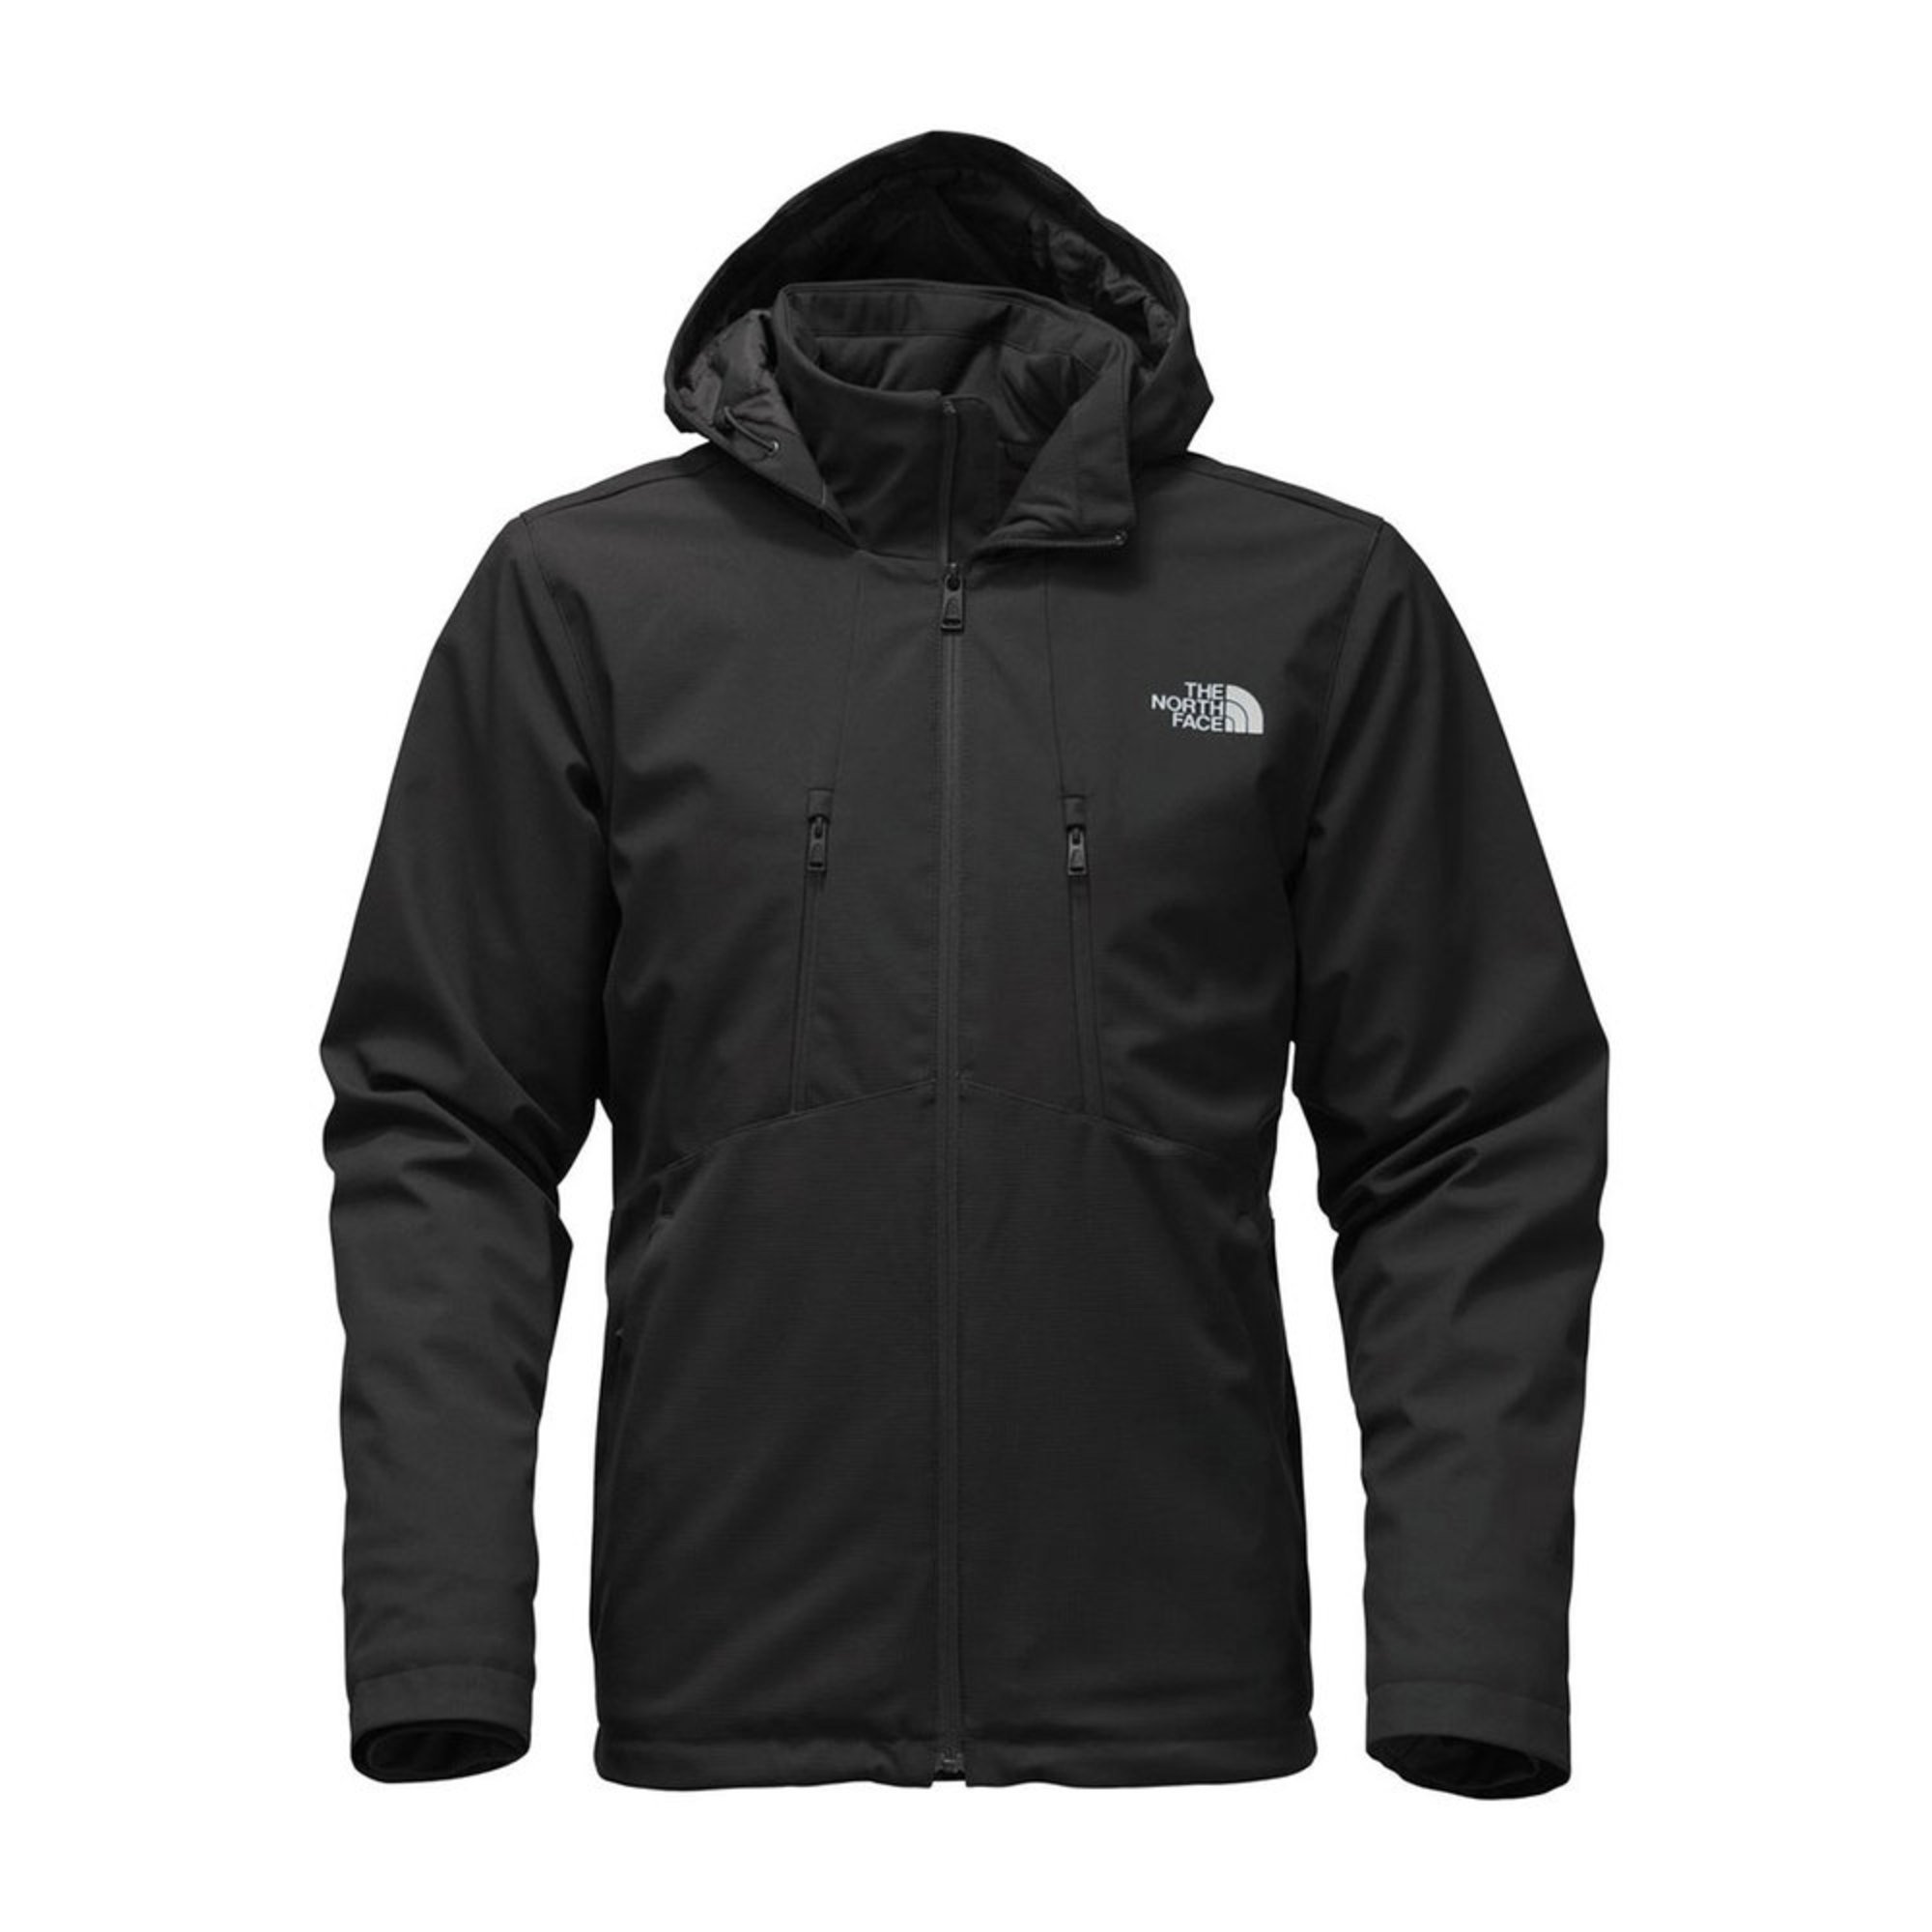 45d8116cf The North Face Men's Apex Elevation Softshell Jacket